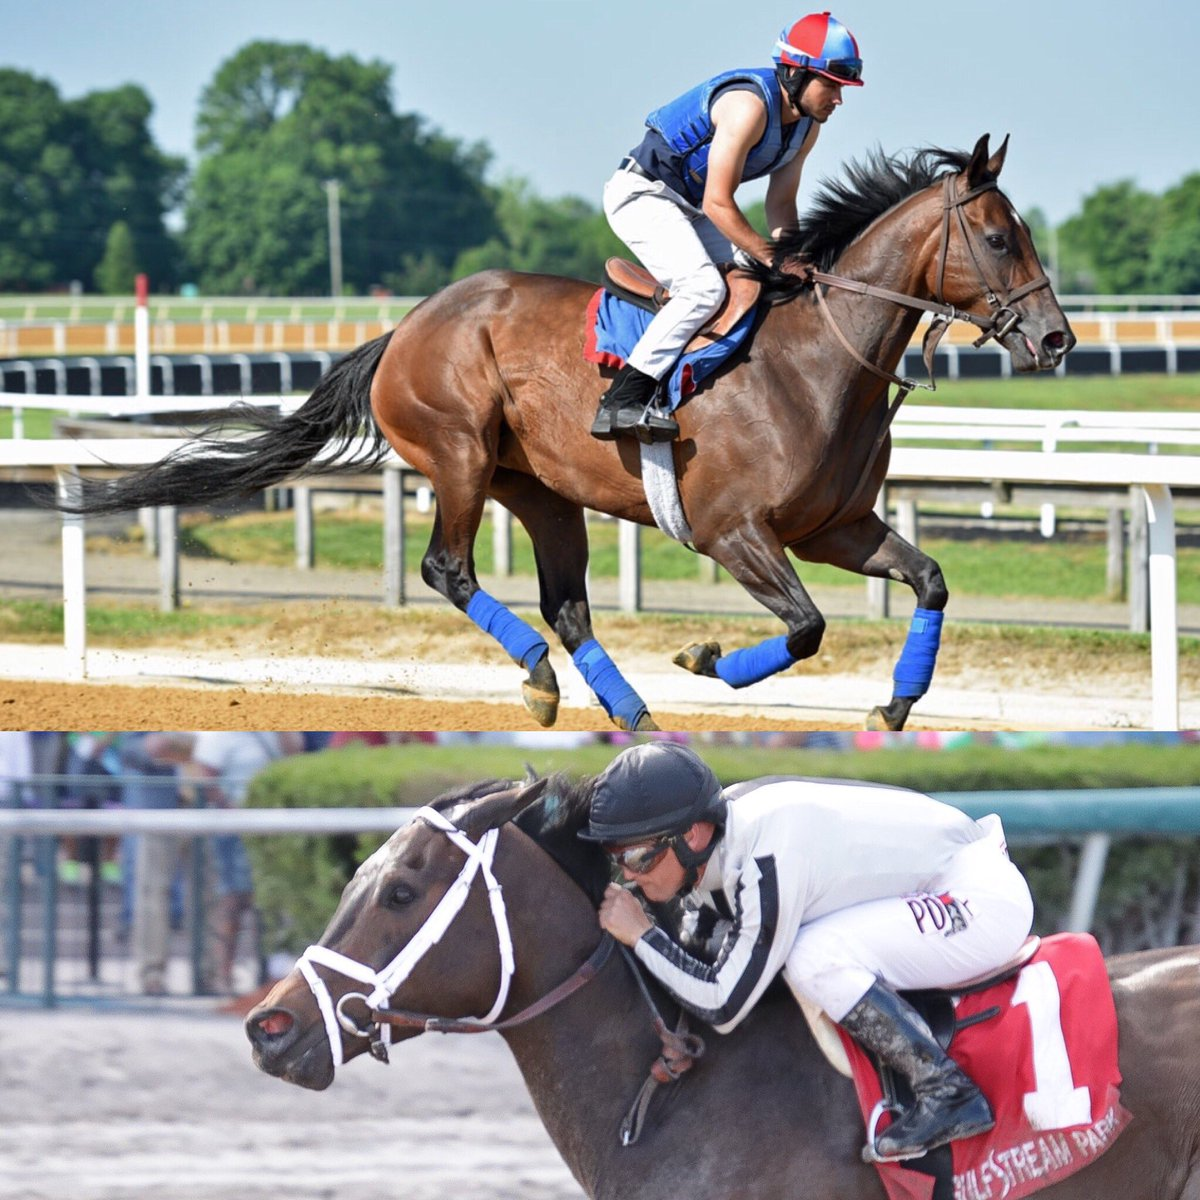 test Twitter Media - BSW Private Purchases G2W/G1P (IVY BELL) and G3P (CAIRENN) plucked out of the Mid-Atlantic both worked well this AM and head to the G1 Ballerina at Saratoga. @Chinahorseclub @uscgatsby @zkisber @ColonelKisber @GrahamMotion @jjcjockey @jose93_ortiz https://t.co/iZ3Au292tx